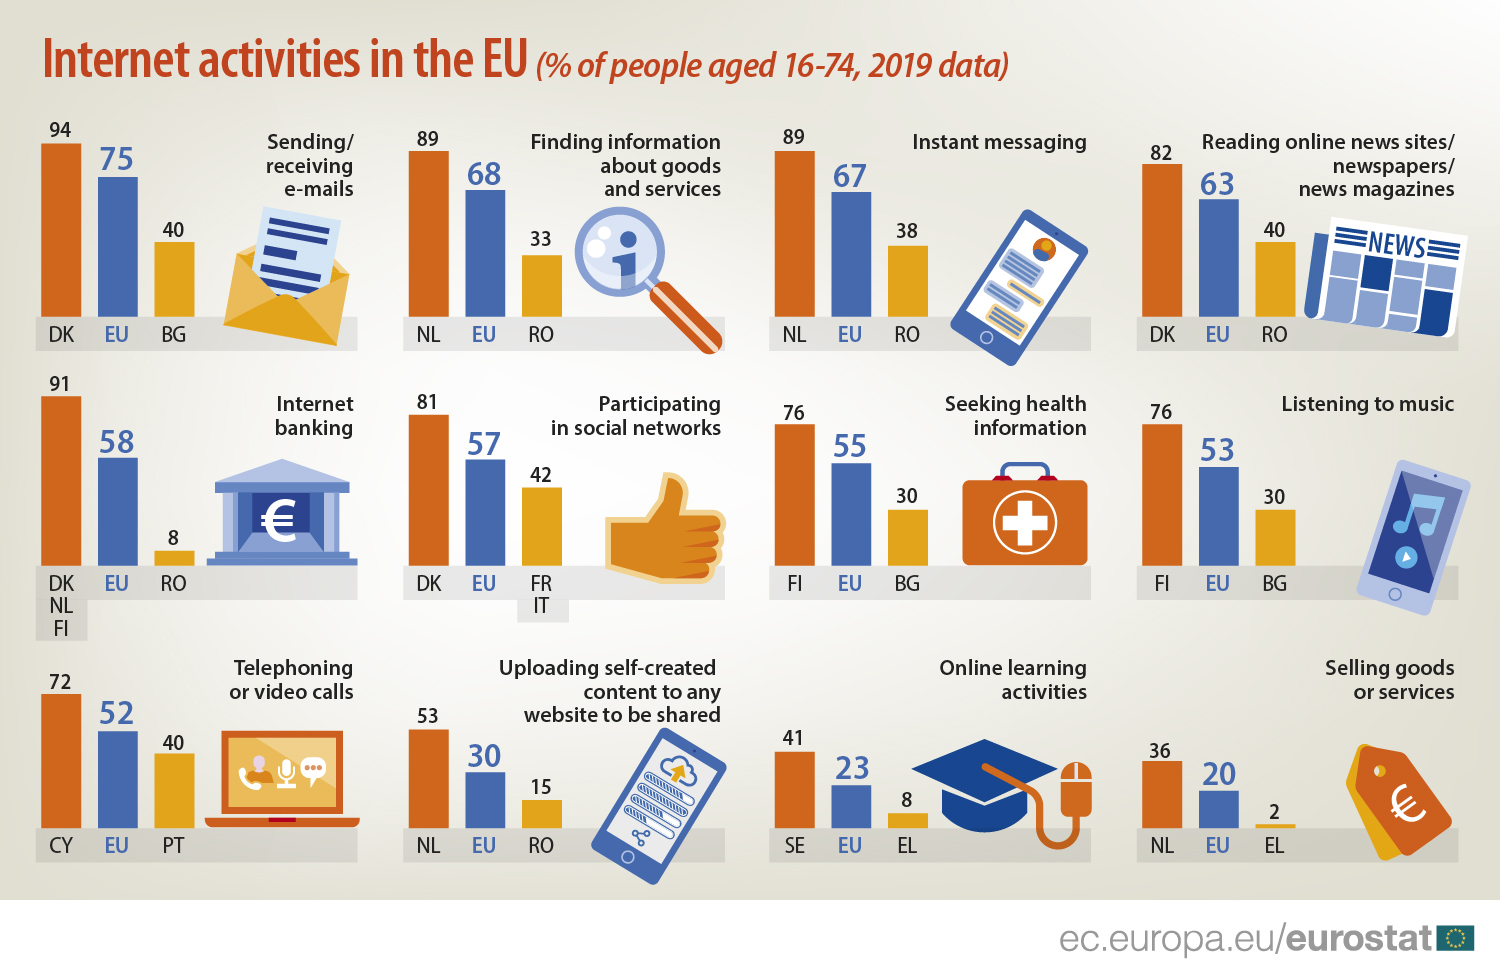 Internet activities in the EU (% of people aged 16-74, 2019)